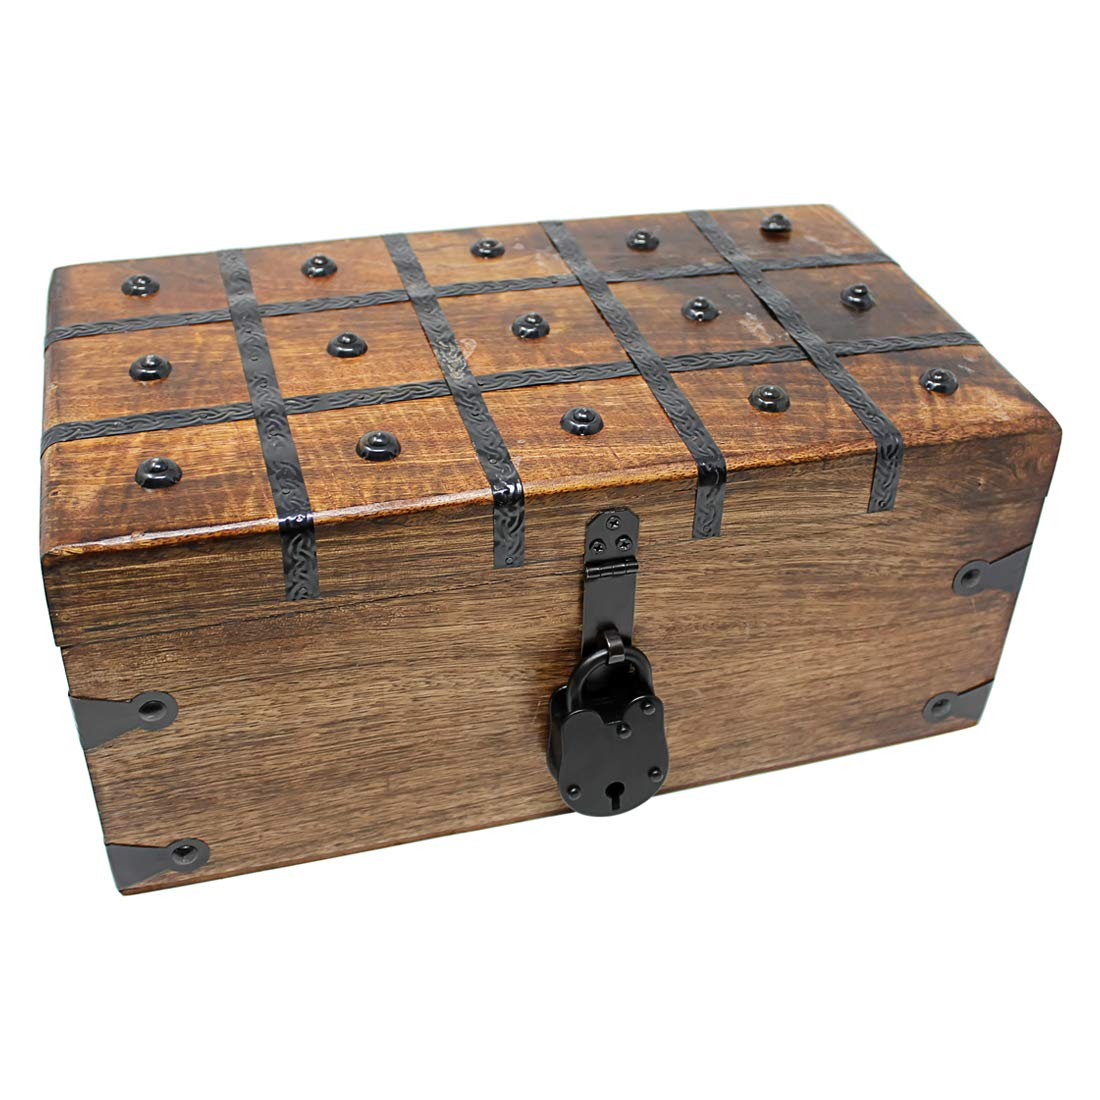 Nautical Cove Treasure Chest Wooden Box with Antique Iron Lock and Skeleton Key - Storage and Decor (Large 14.25 x 8 x 6.5) by Nautical Cove